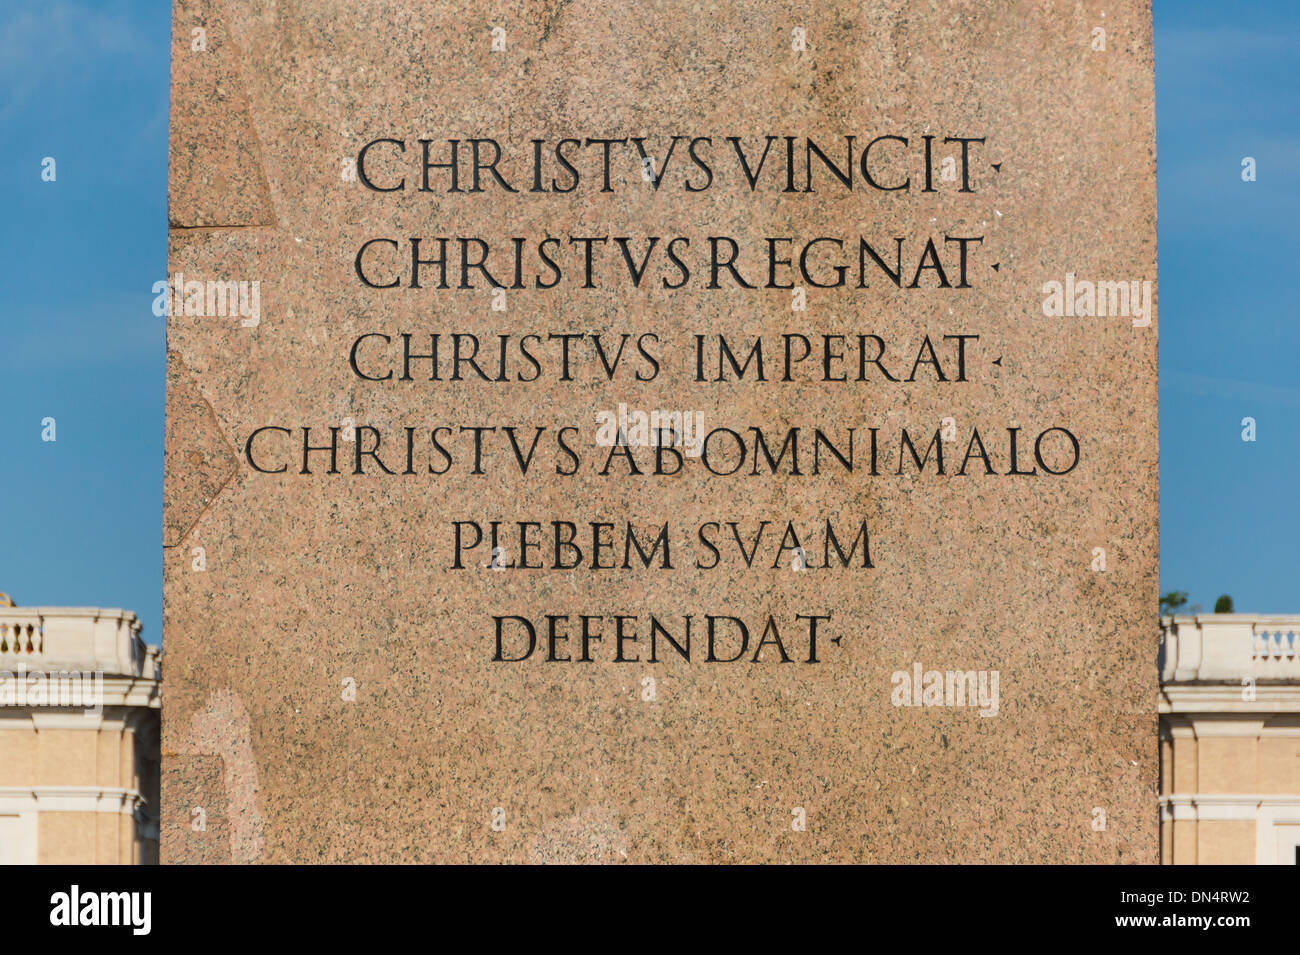 Christian latin text on the pedestal of the obelisk at Saint Peter's square, Vatican City. - Stock Image